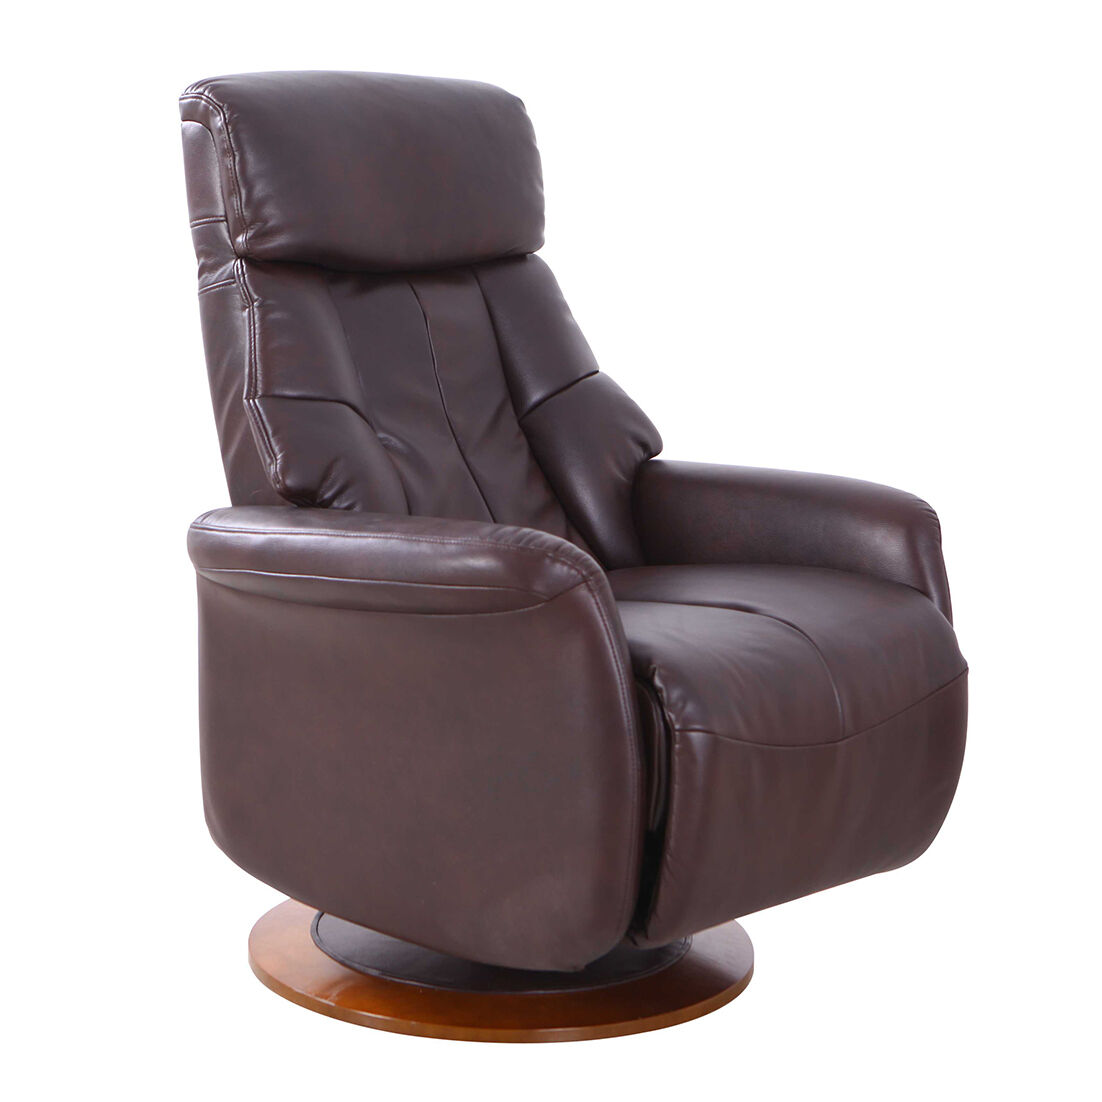 Rent to Own Recliner Chairs | Aarons